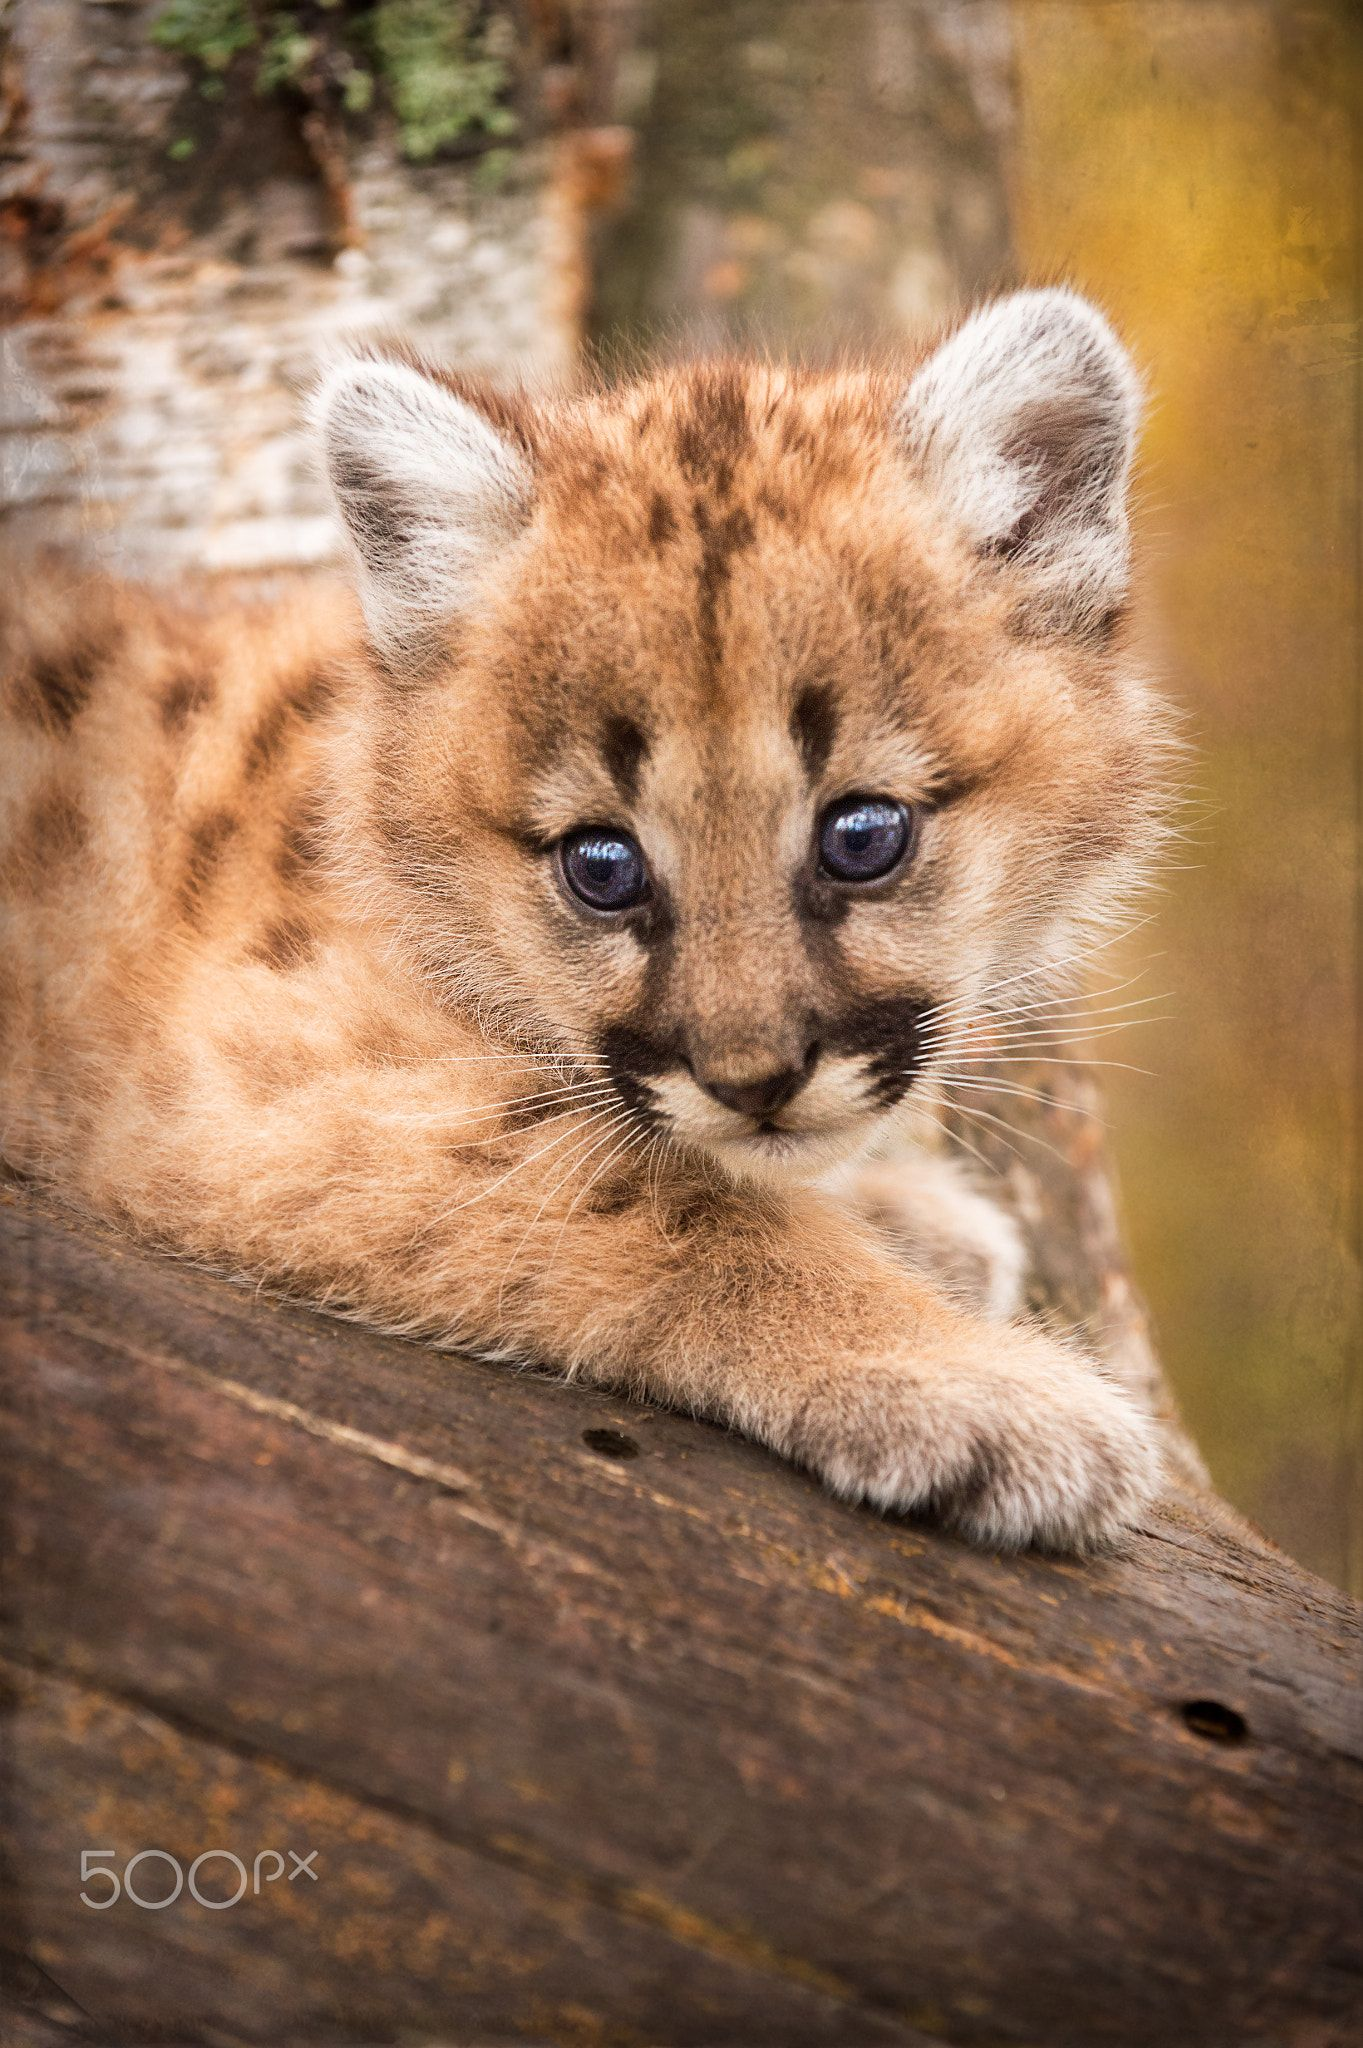 Sweet Nina 6 Week Old Mountain Lion Kitten Looks Down From Branch Captive Animals Beautiful Pet Birds Wild Cats